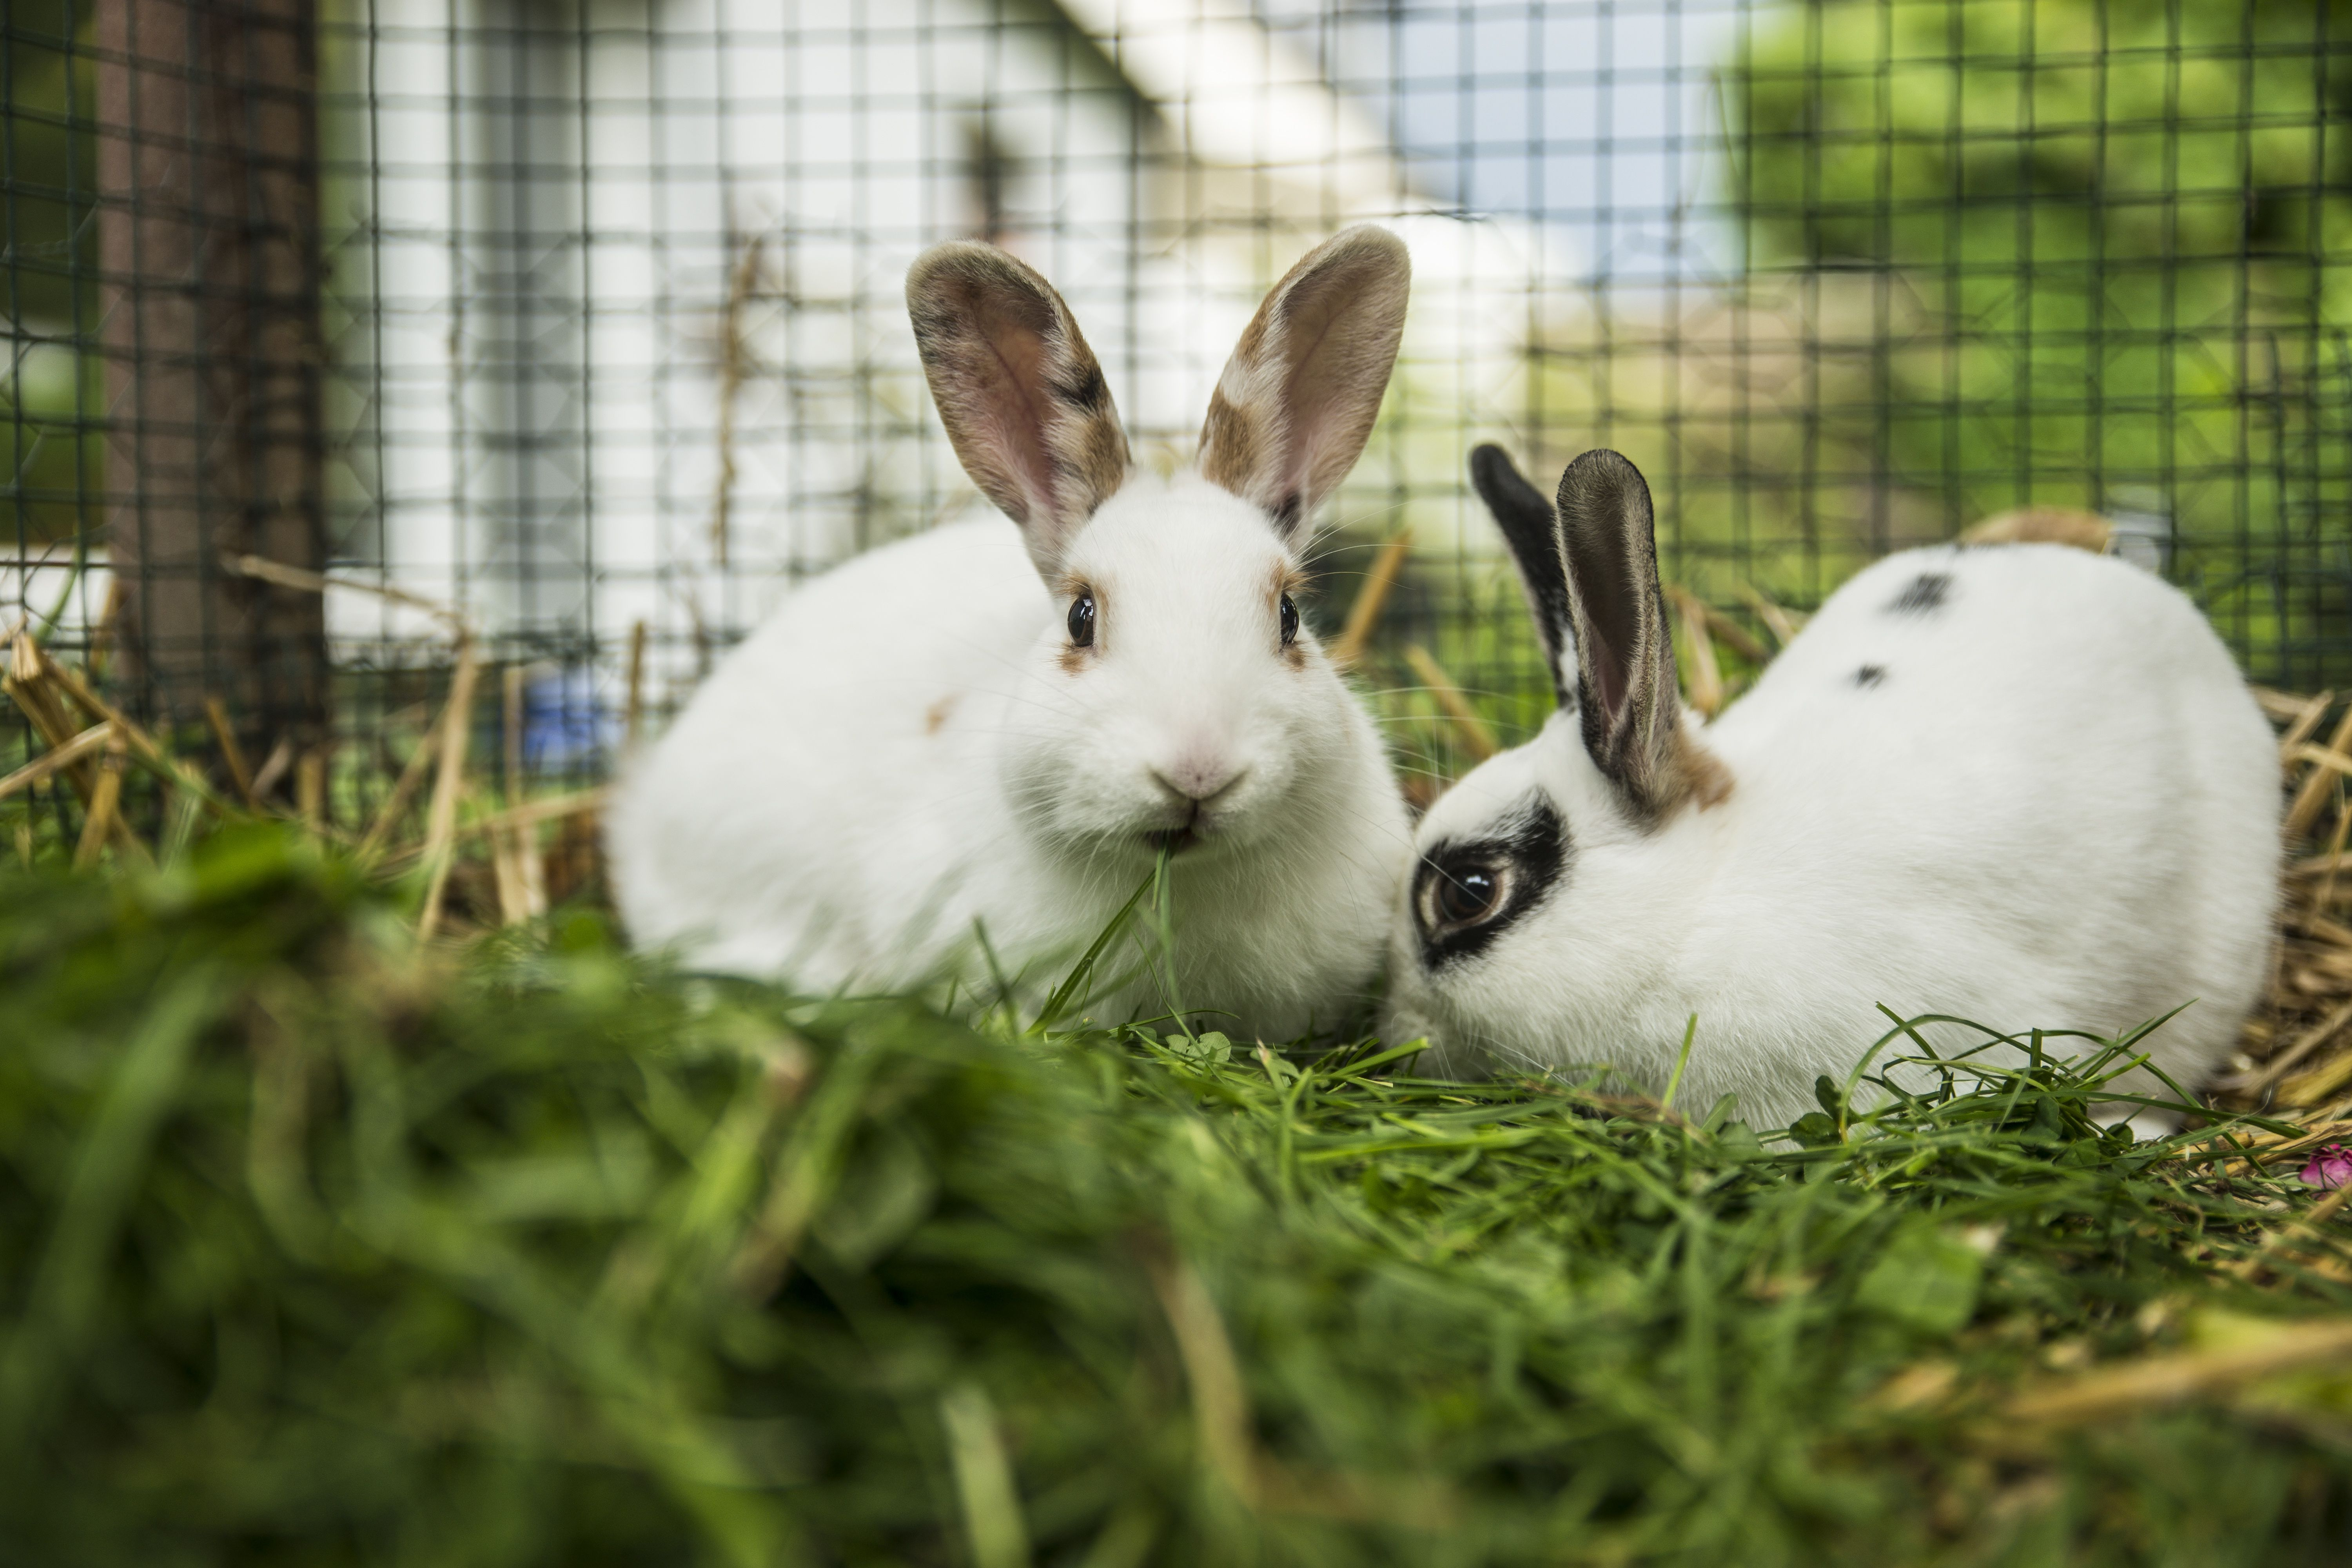 Two rabbits in a cage on a meadow